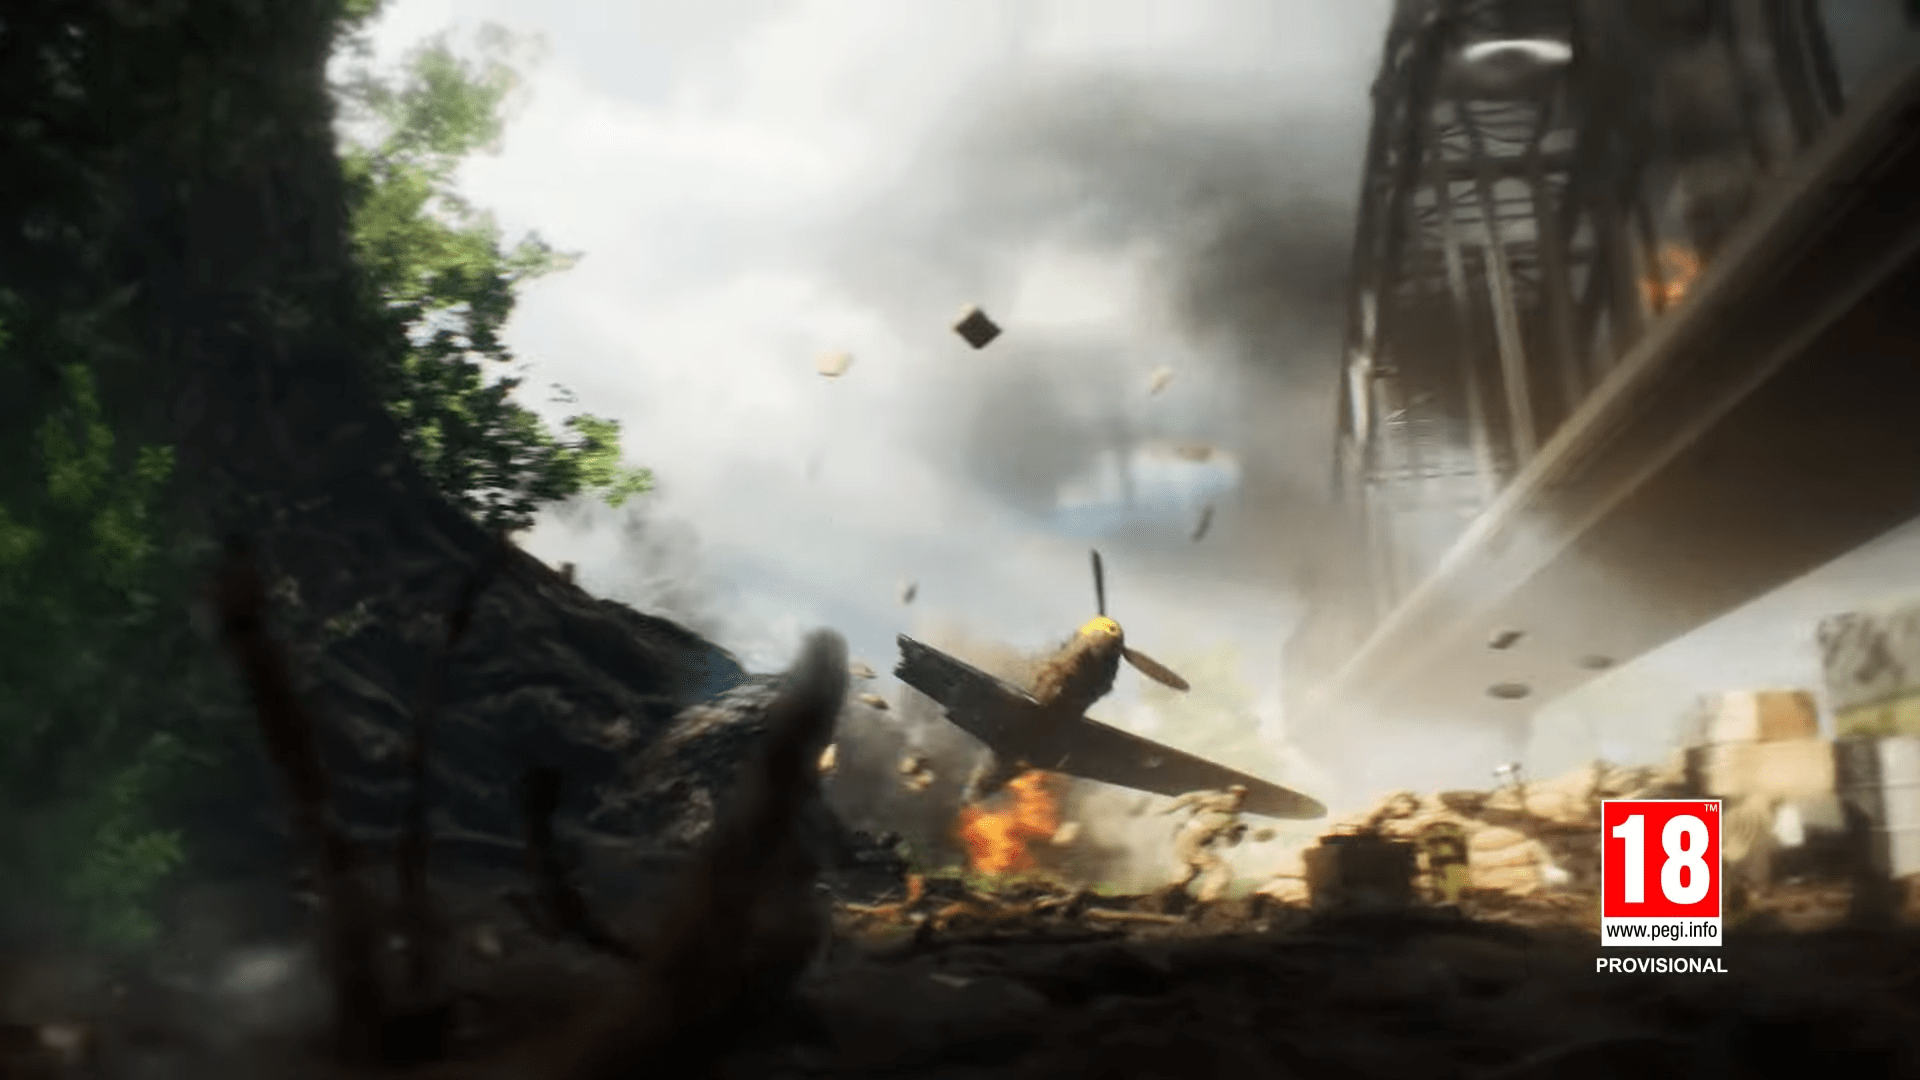 Using Linux Operating Systems In Battlefield V Will Likely Result In A Permanent Ban